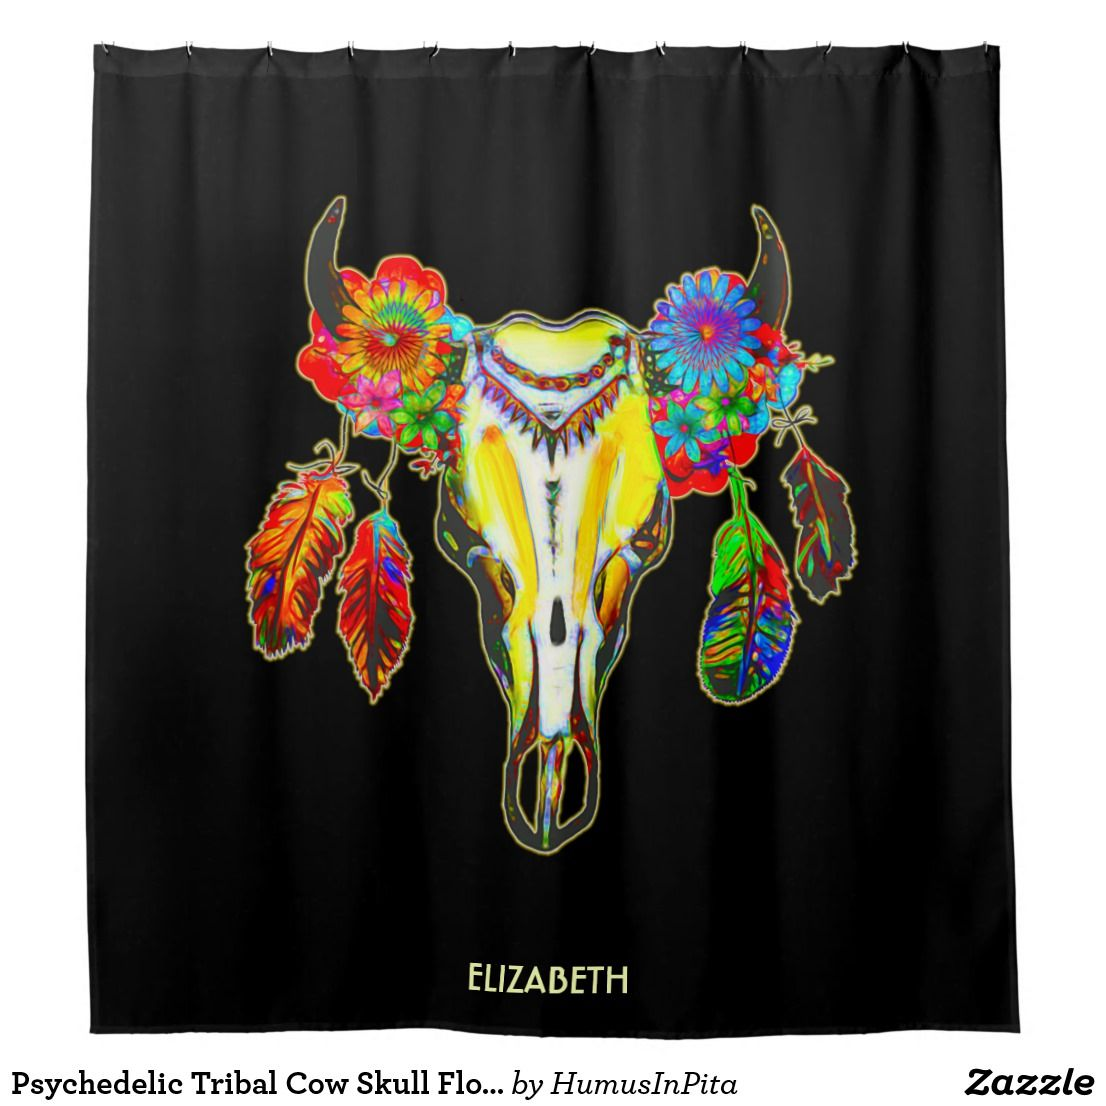 Psychedelic Tribal Cow Skull Flowers Feathers Col Shower Curtain